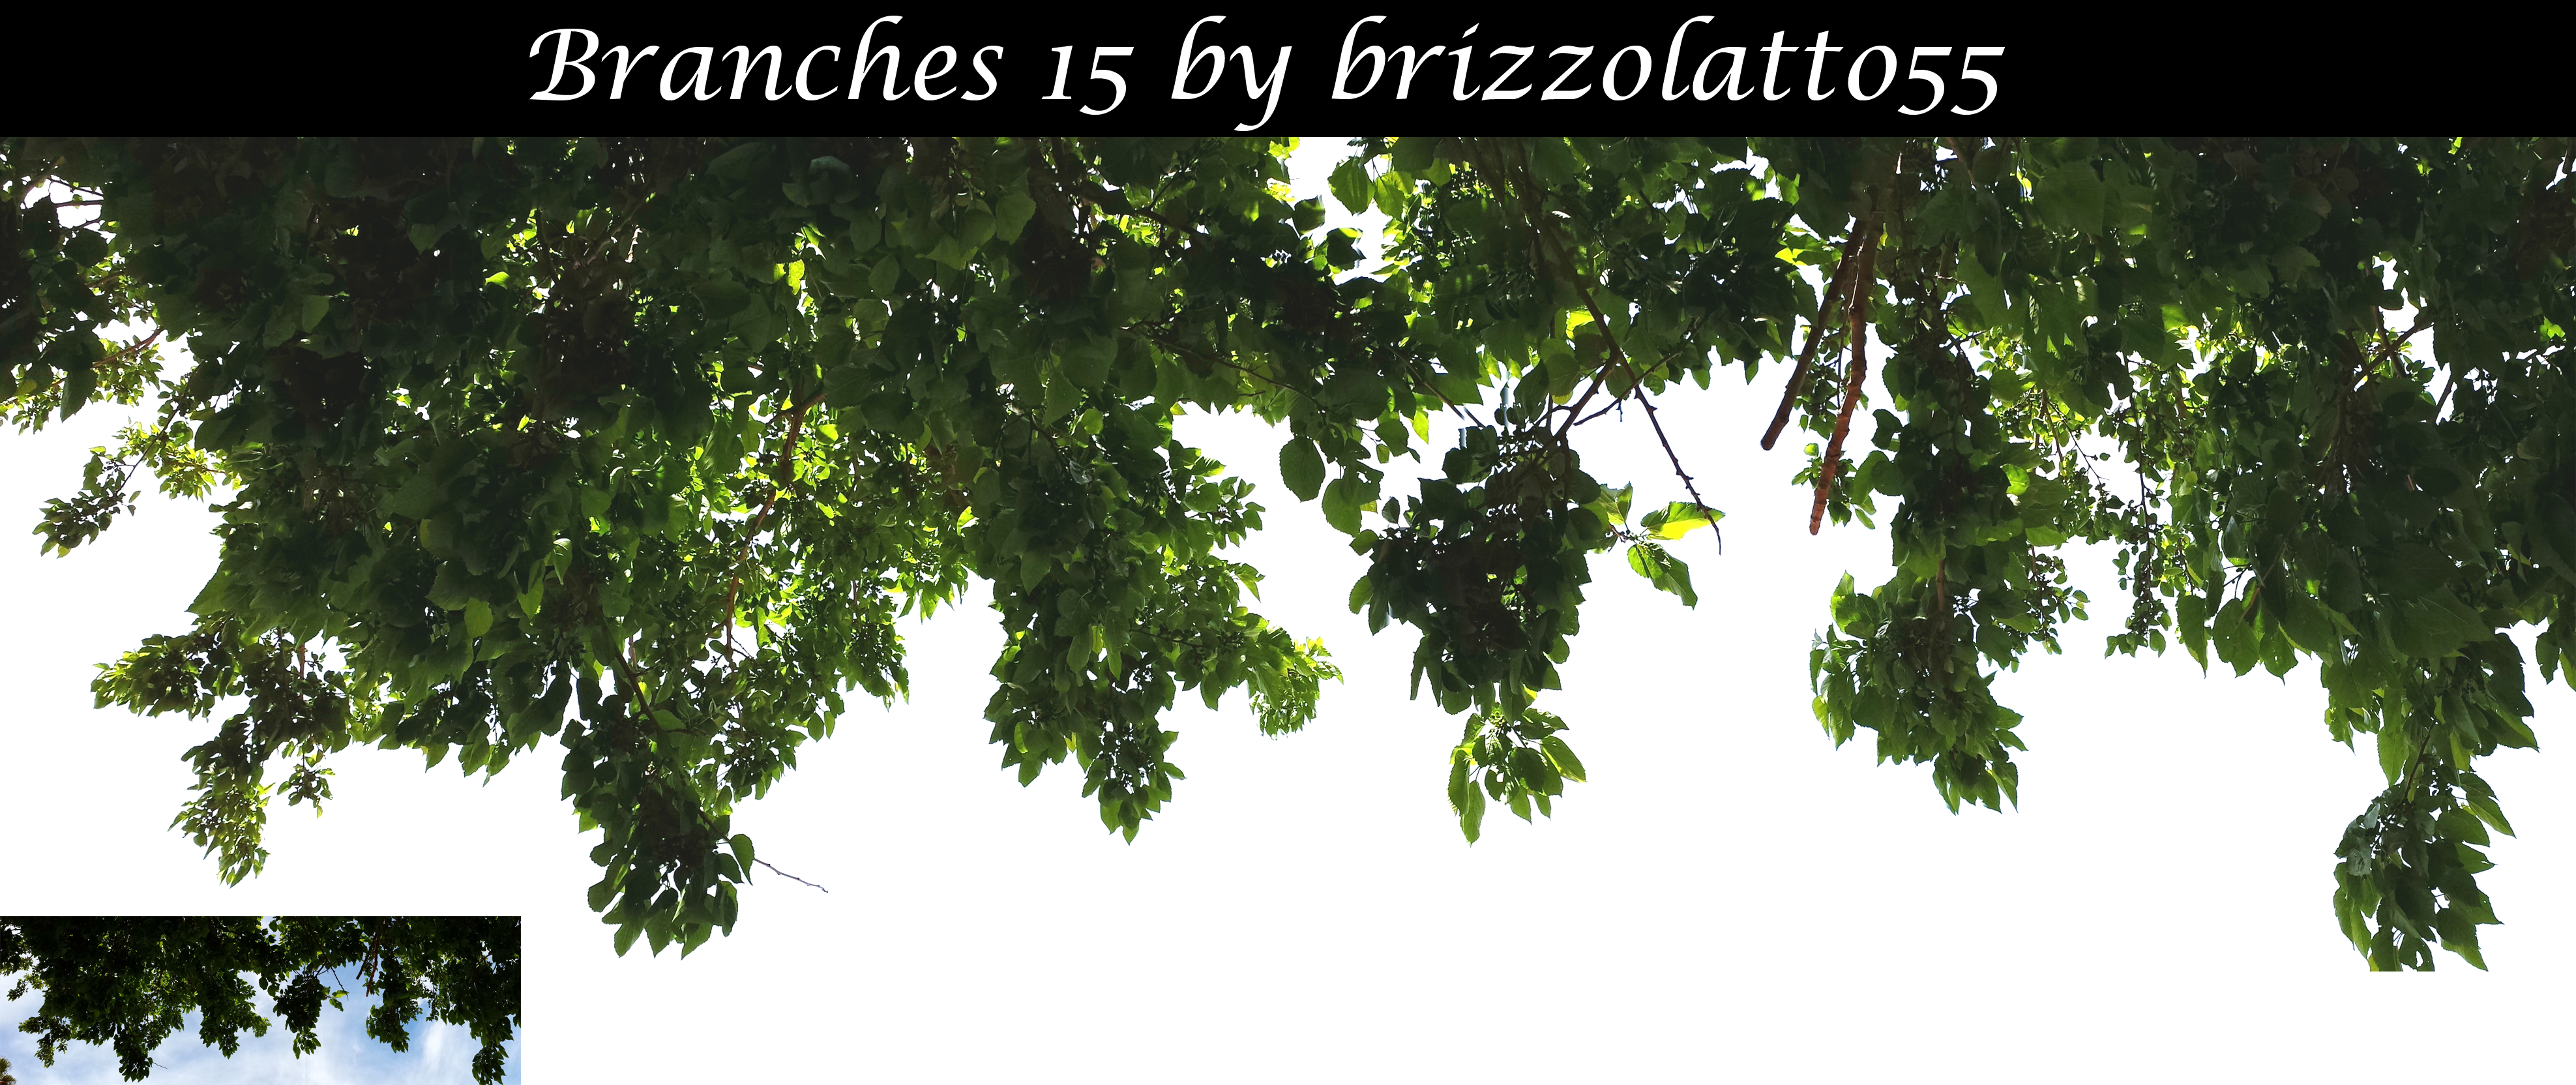 Branches 15